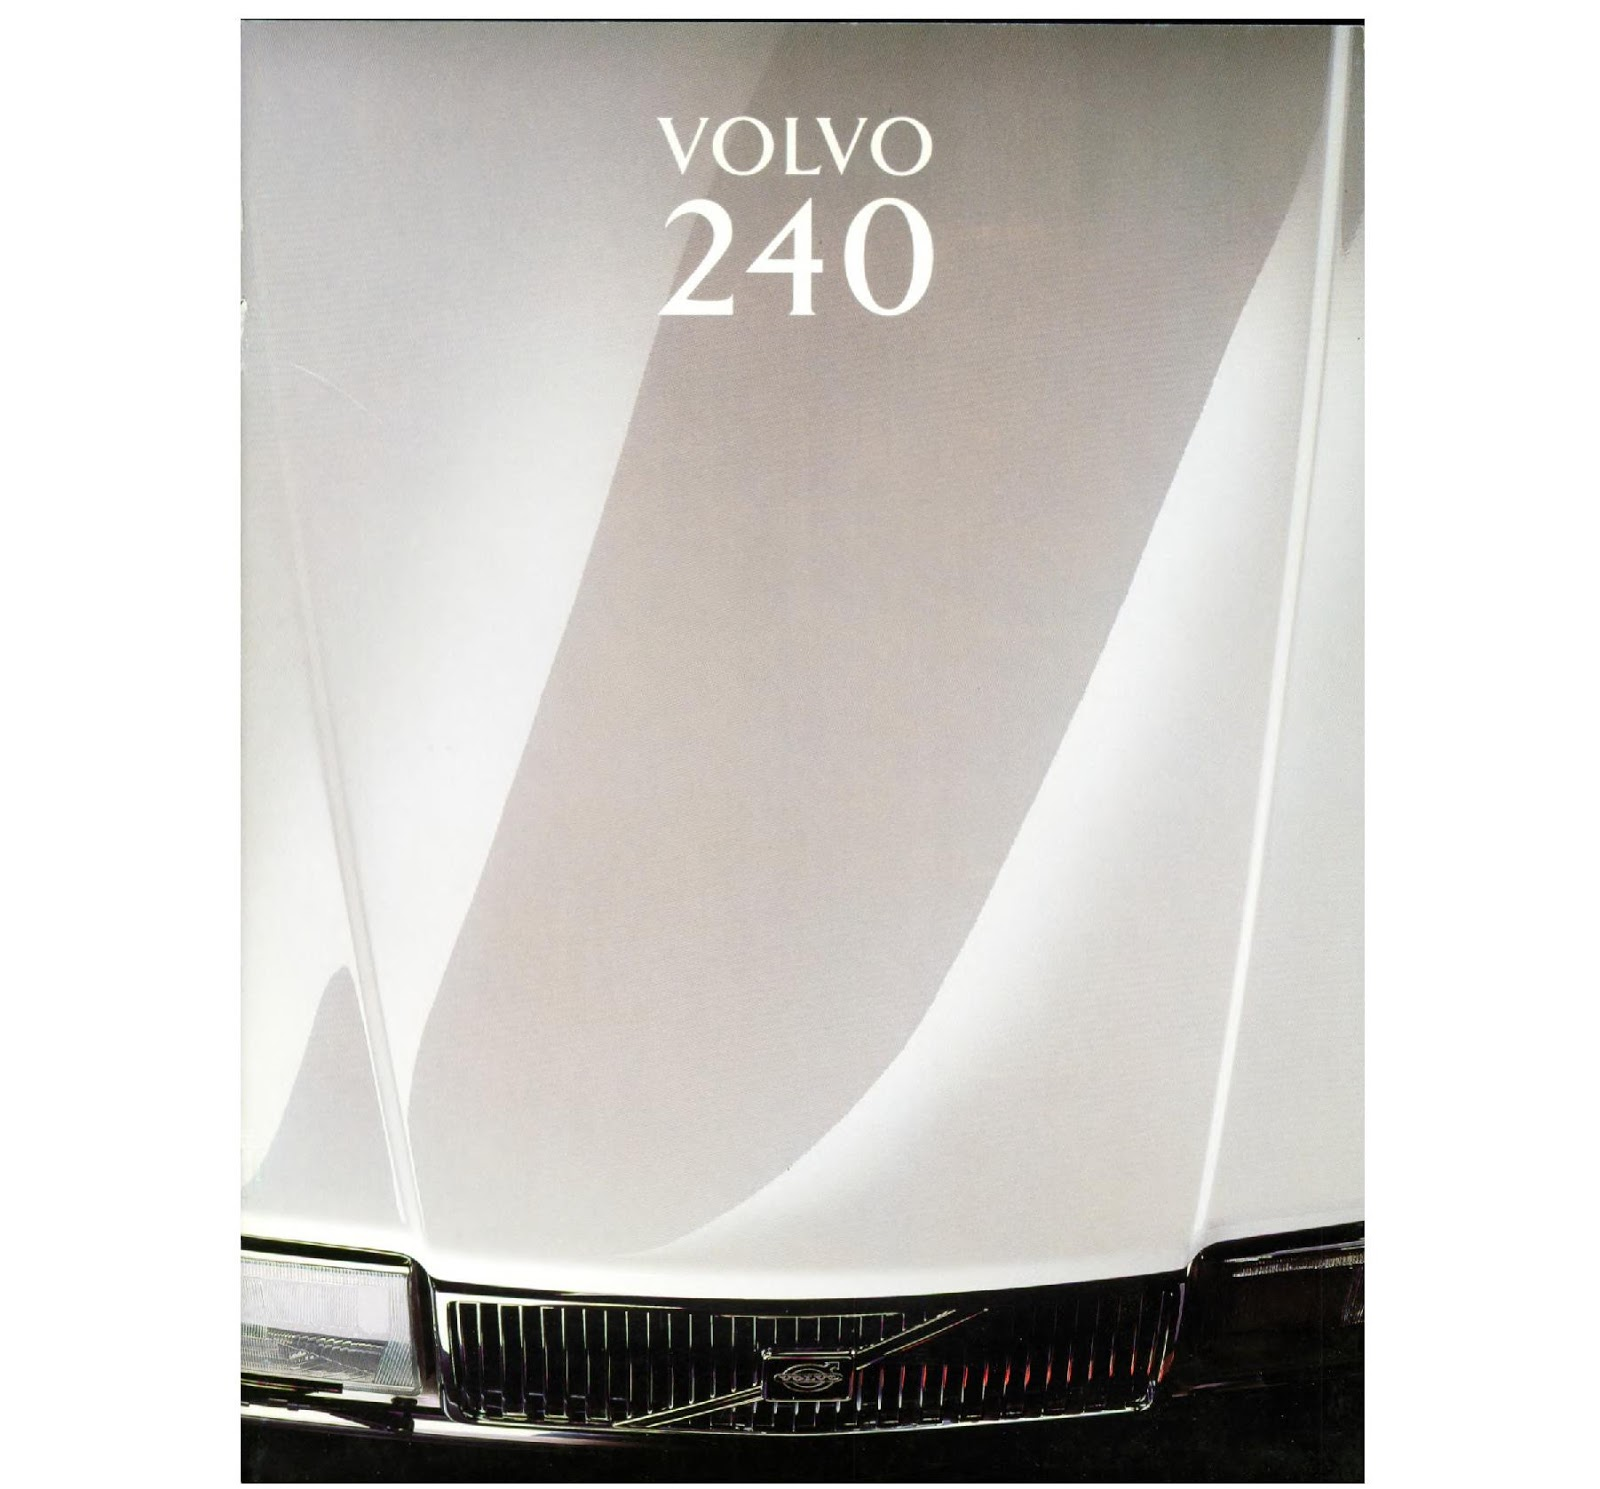 Download A Brochure For Volvo Models: My World Of Volvo: Volvo 240 Brochure (NL